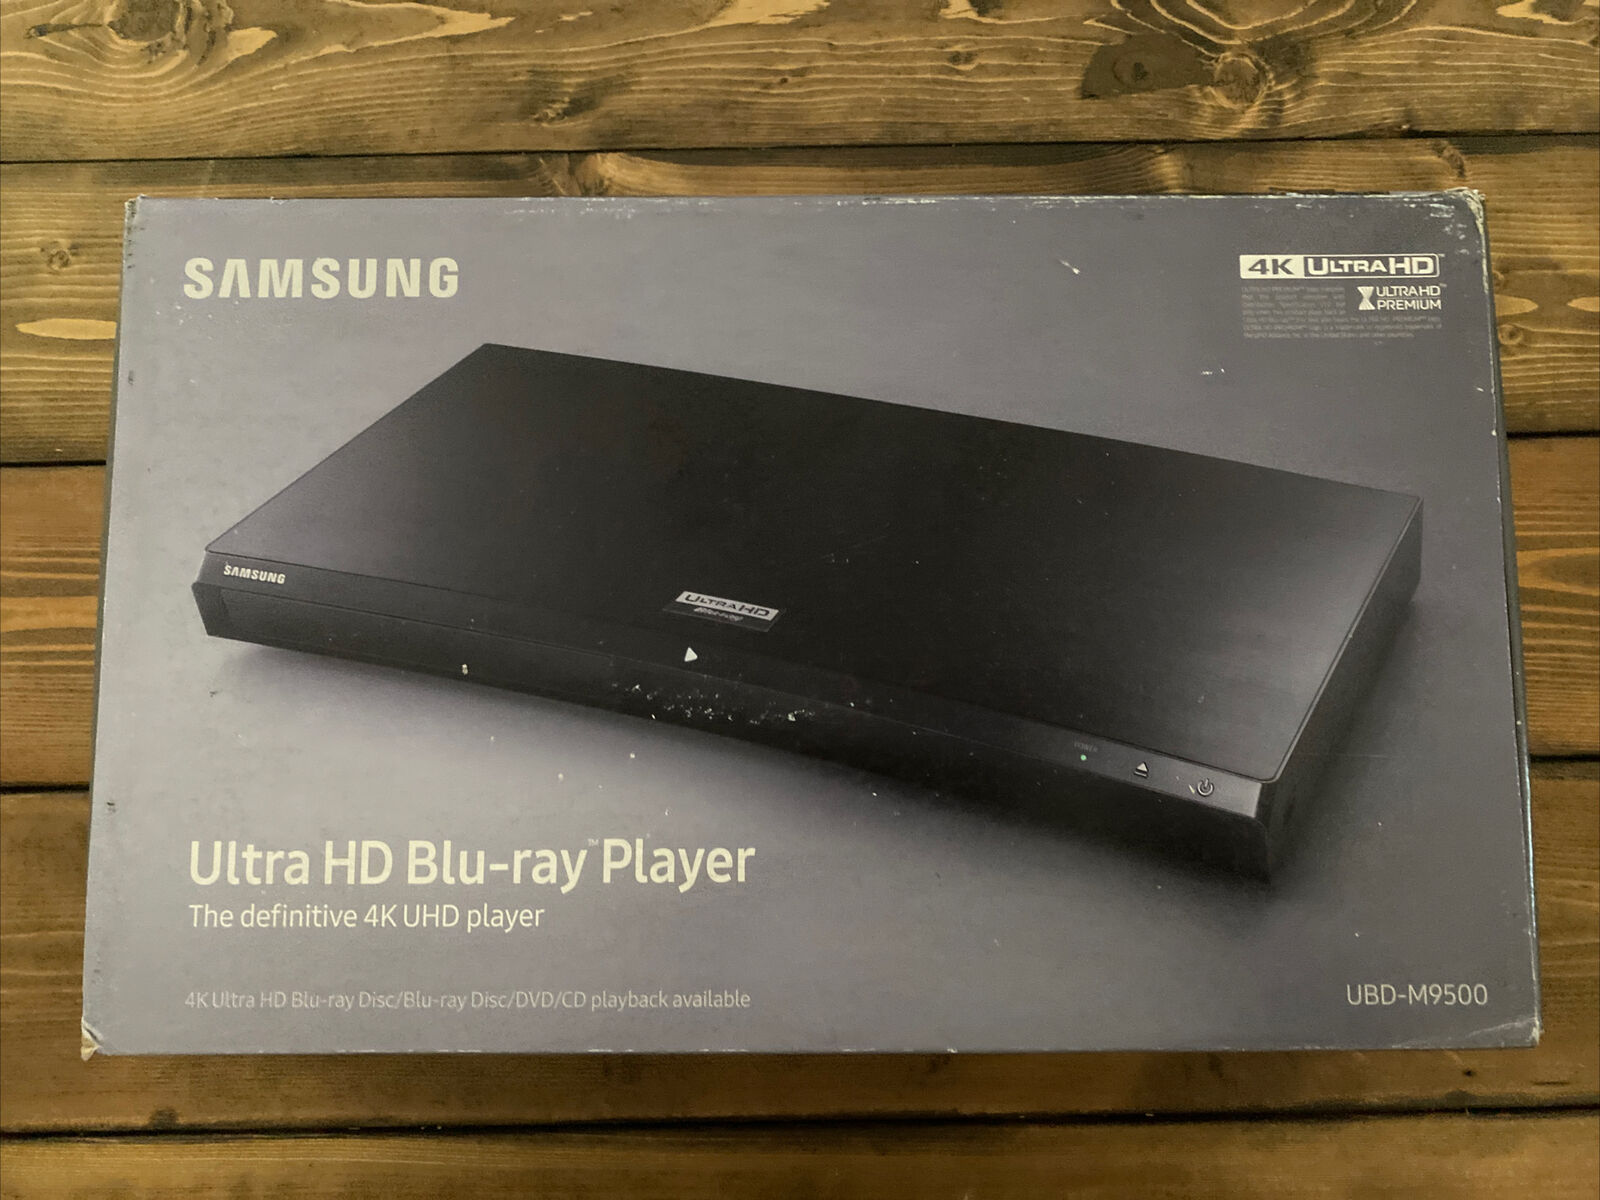 Samsung - UBD-M9500 Streaming 4K Ultra HD Wi-Fi Built-In Blu-Ray Player - Sealed player samsung sealed streaming ultra